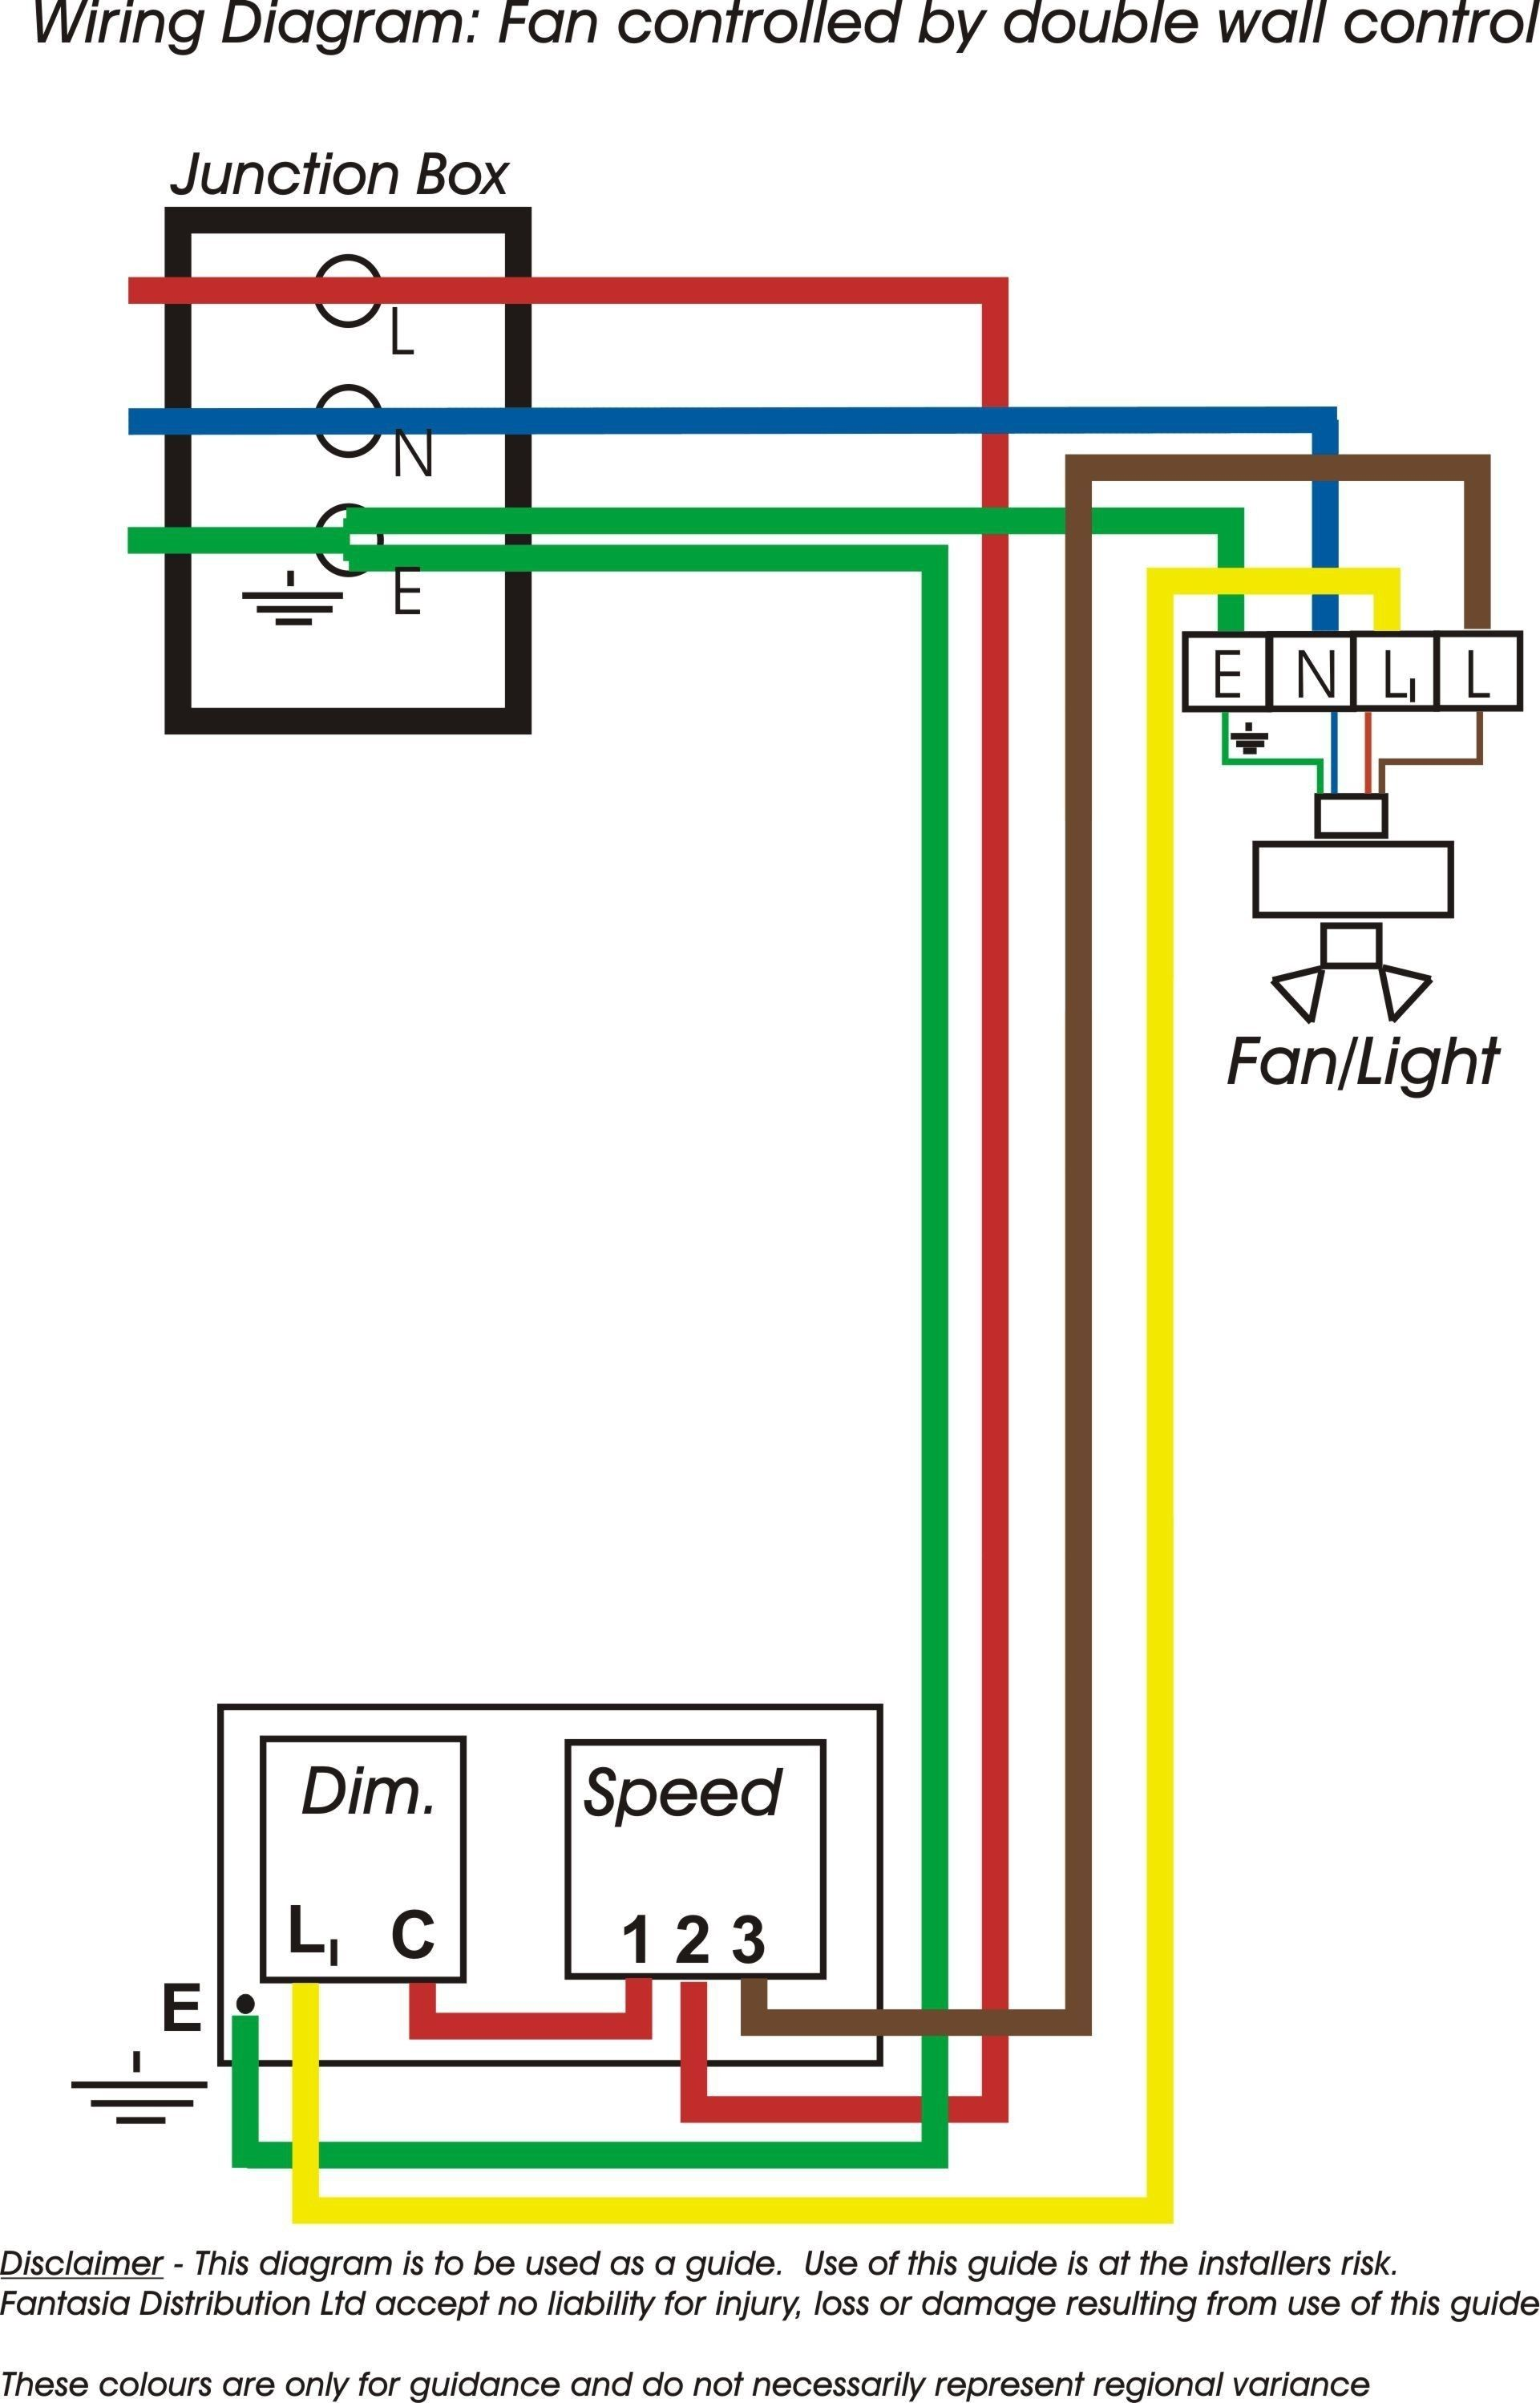 new industrial exhaust fan wiring diagram #diagram #diagramsample  #diagramtemplate | ceiling fan switch, ceiling fan wiring, ceiling fan pull  chain  pinterest